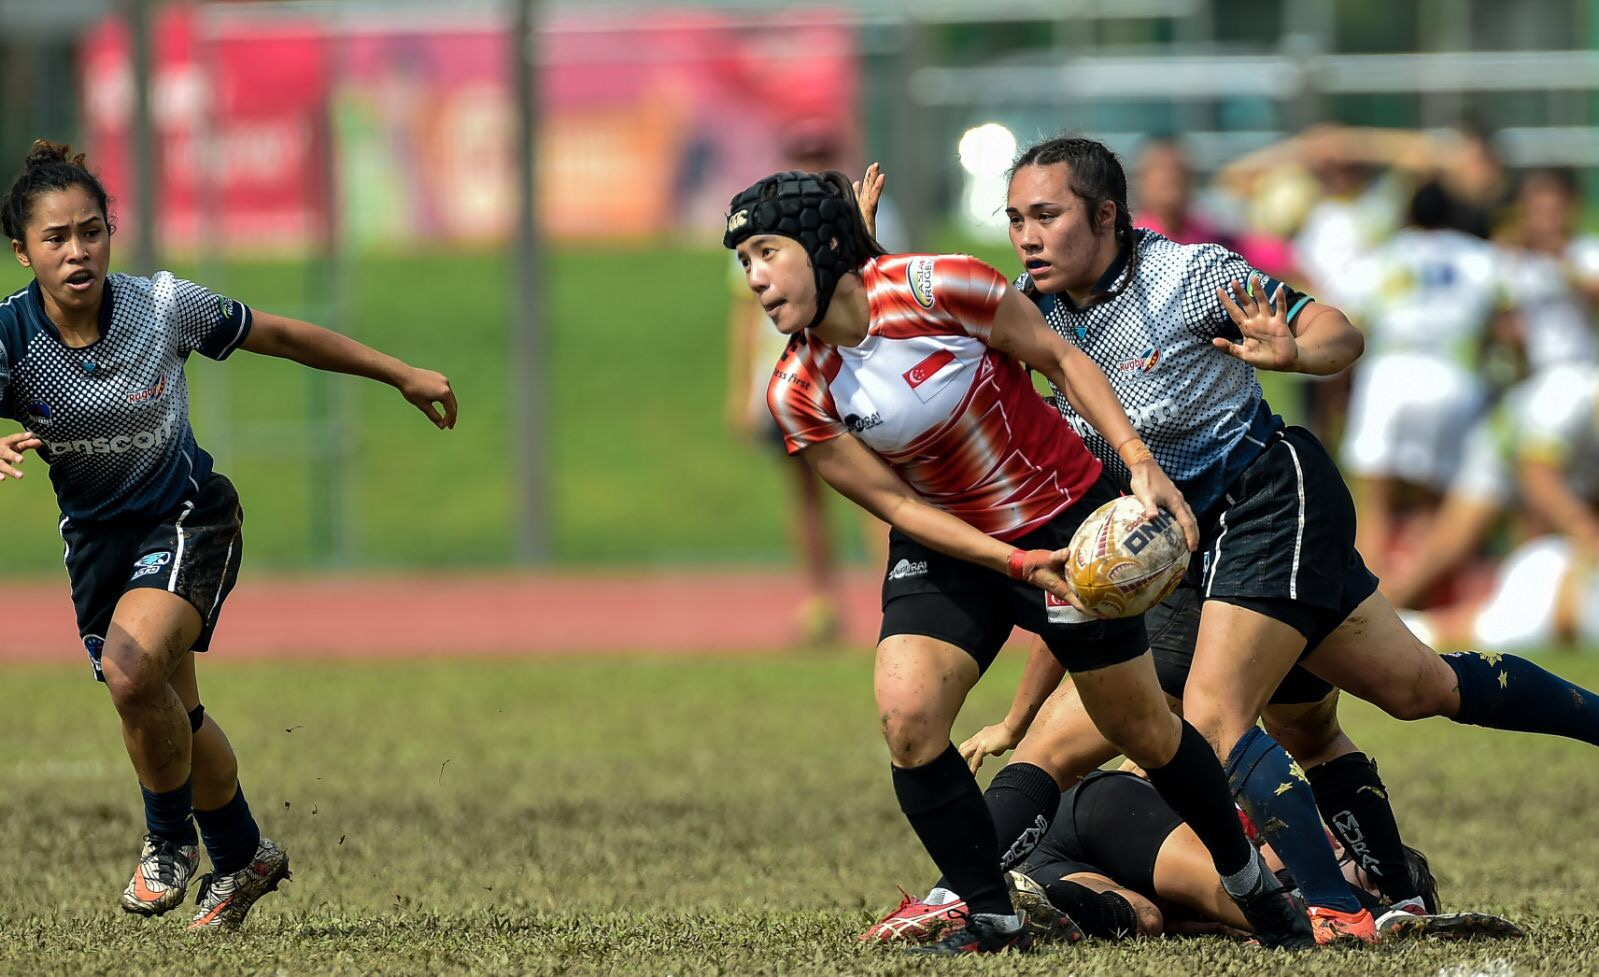 Women's Captain Alvinia Ow Yong in action at the South East Asian 7s in April this year